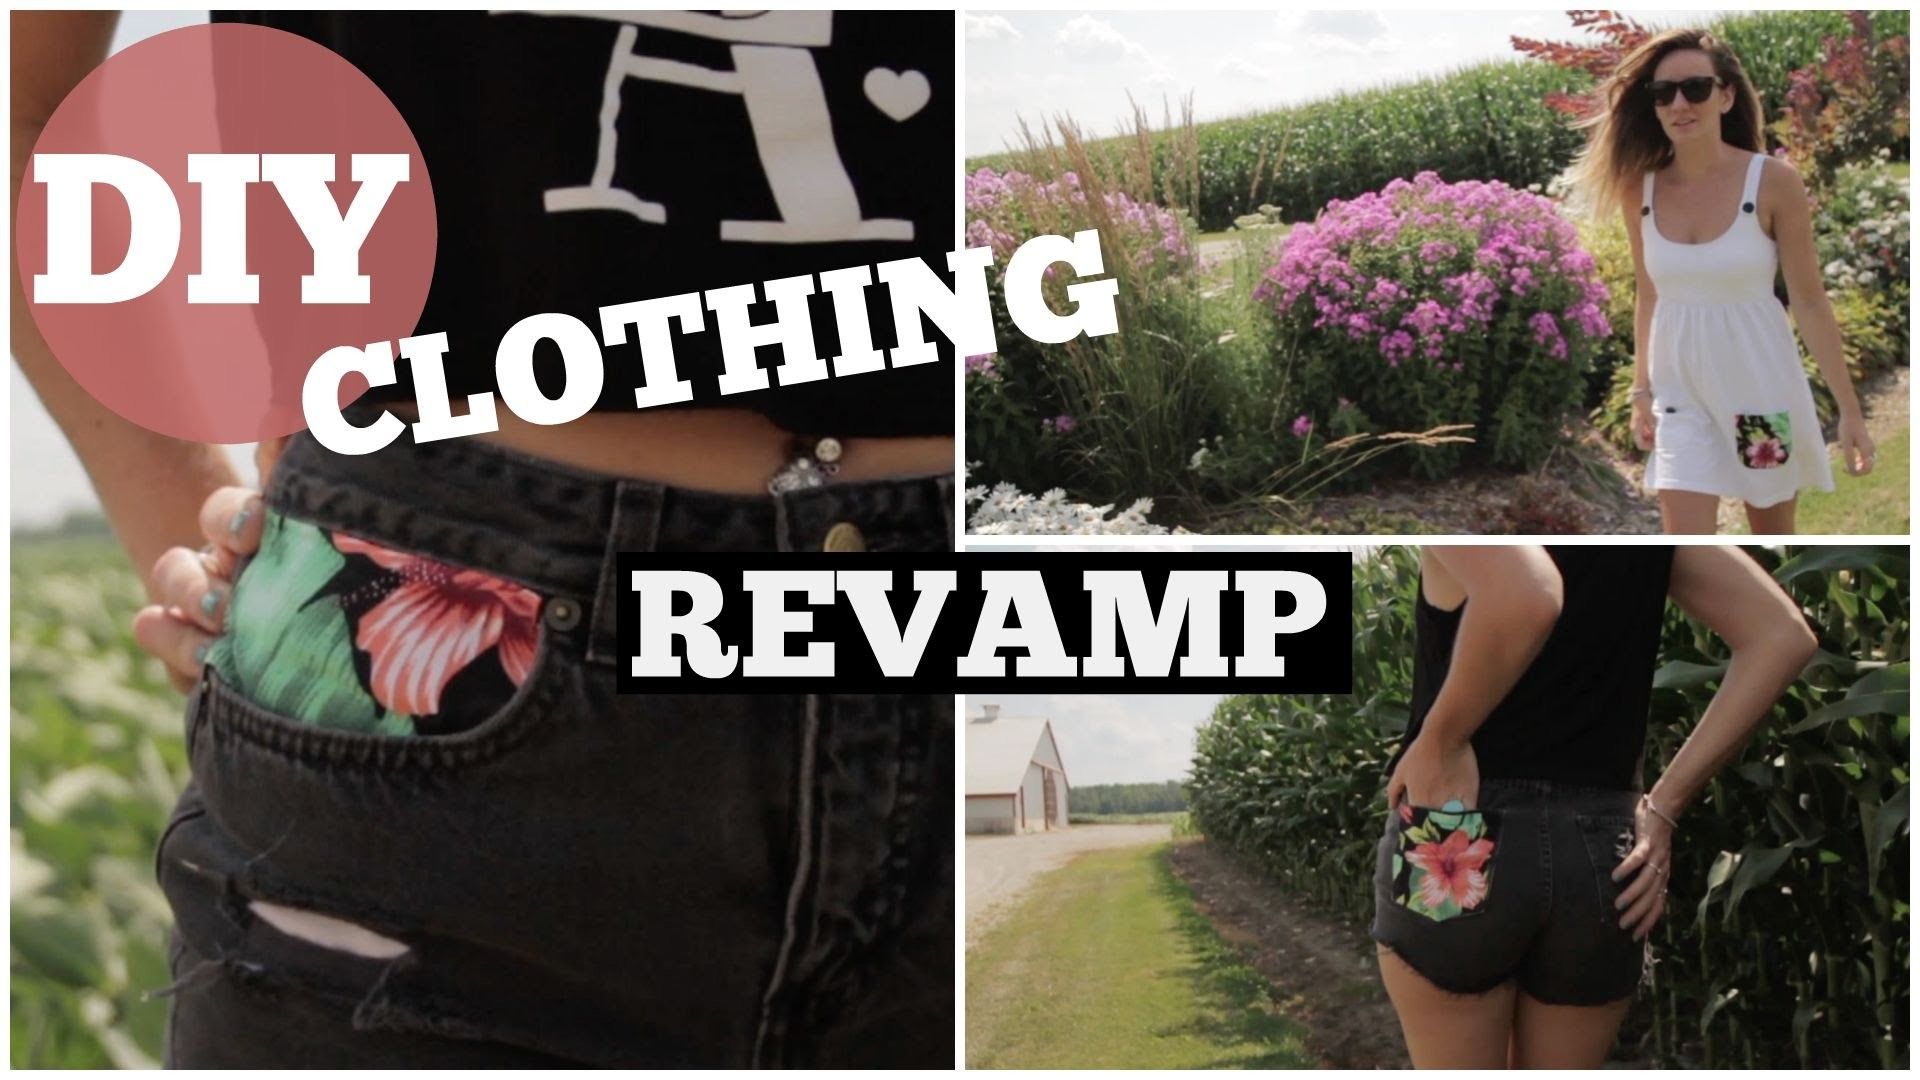 DIY Clothing - Revamp.Refashion Old Clothes - NO sew!